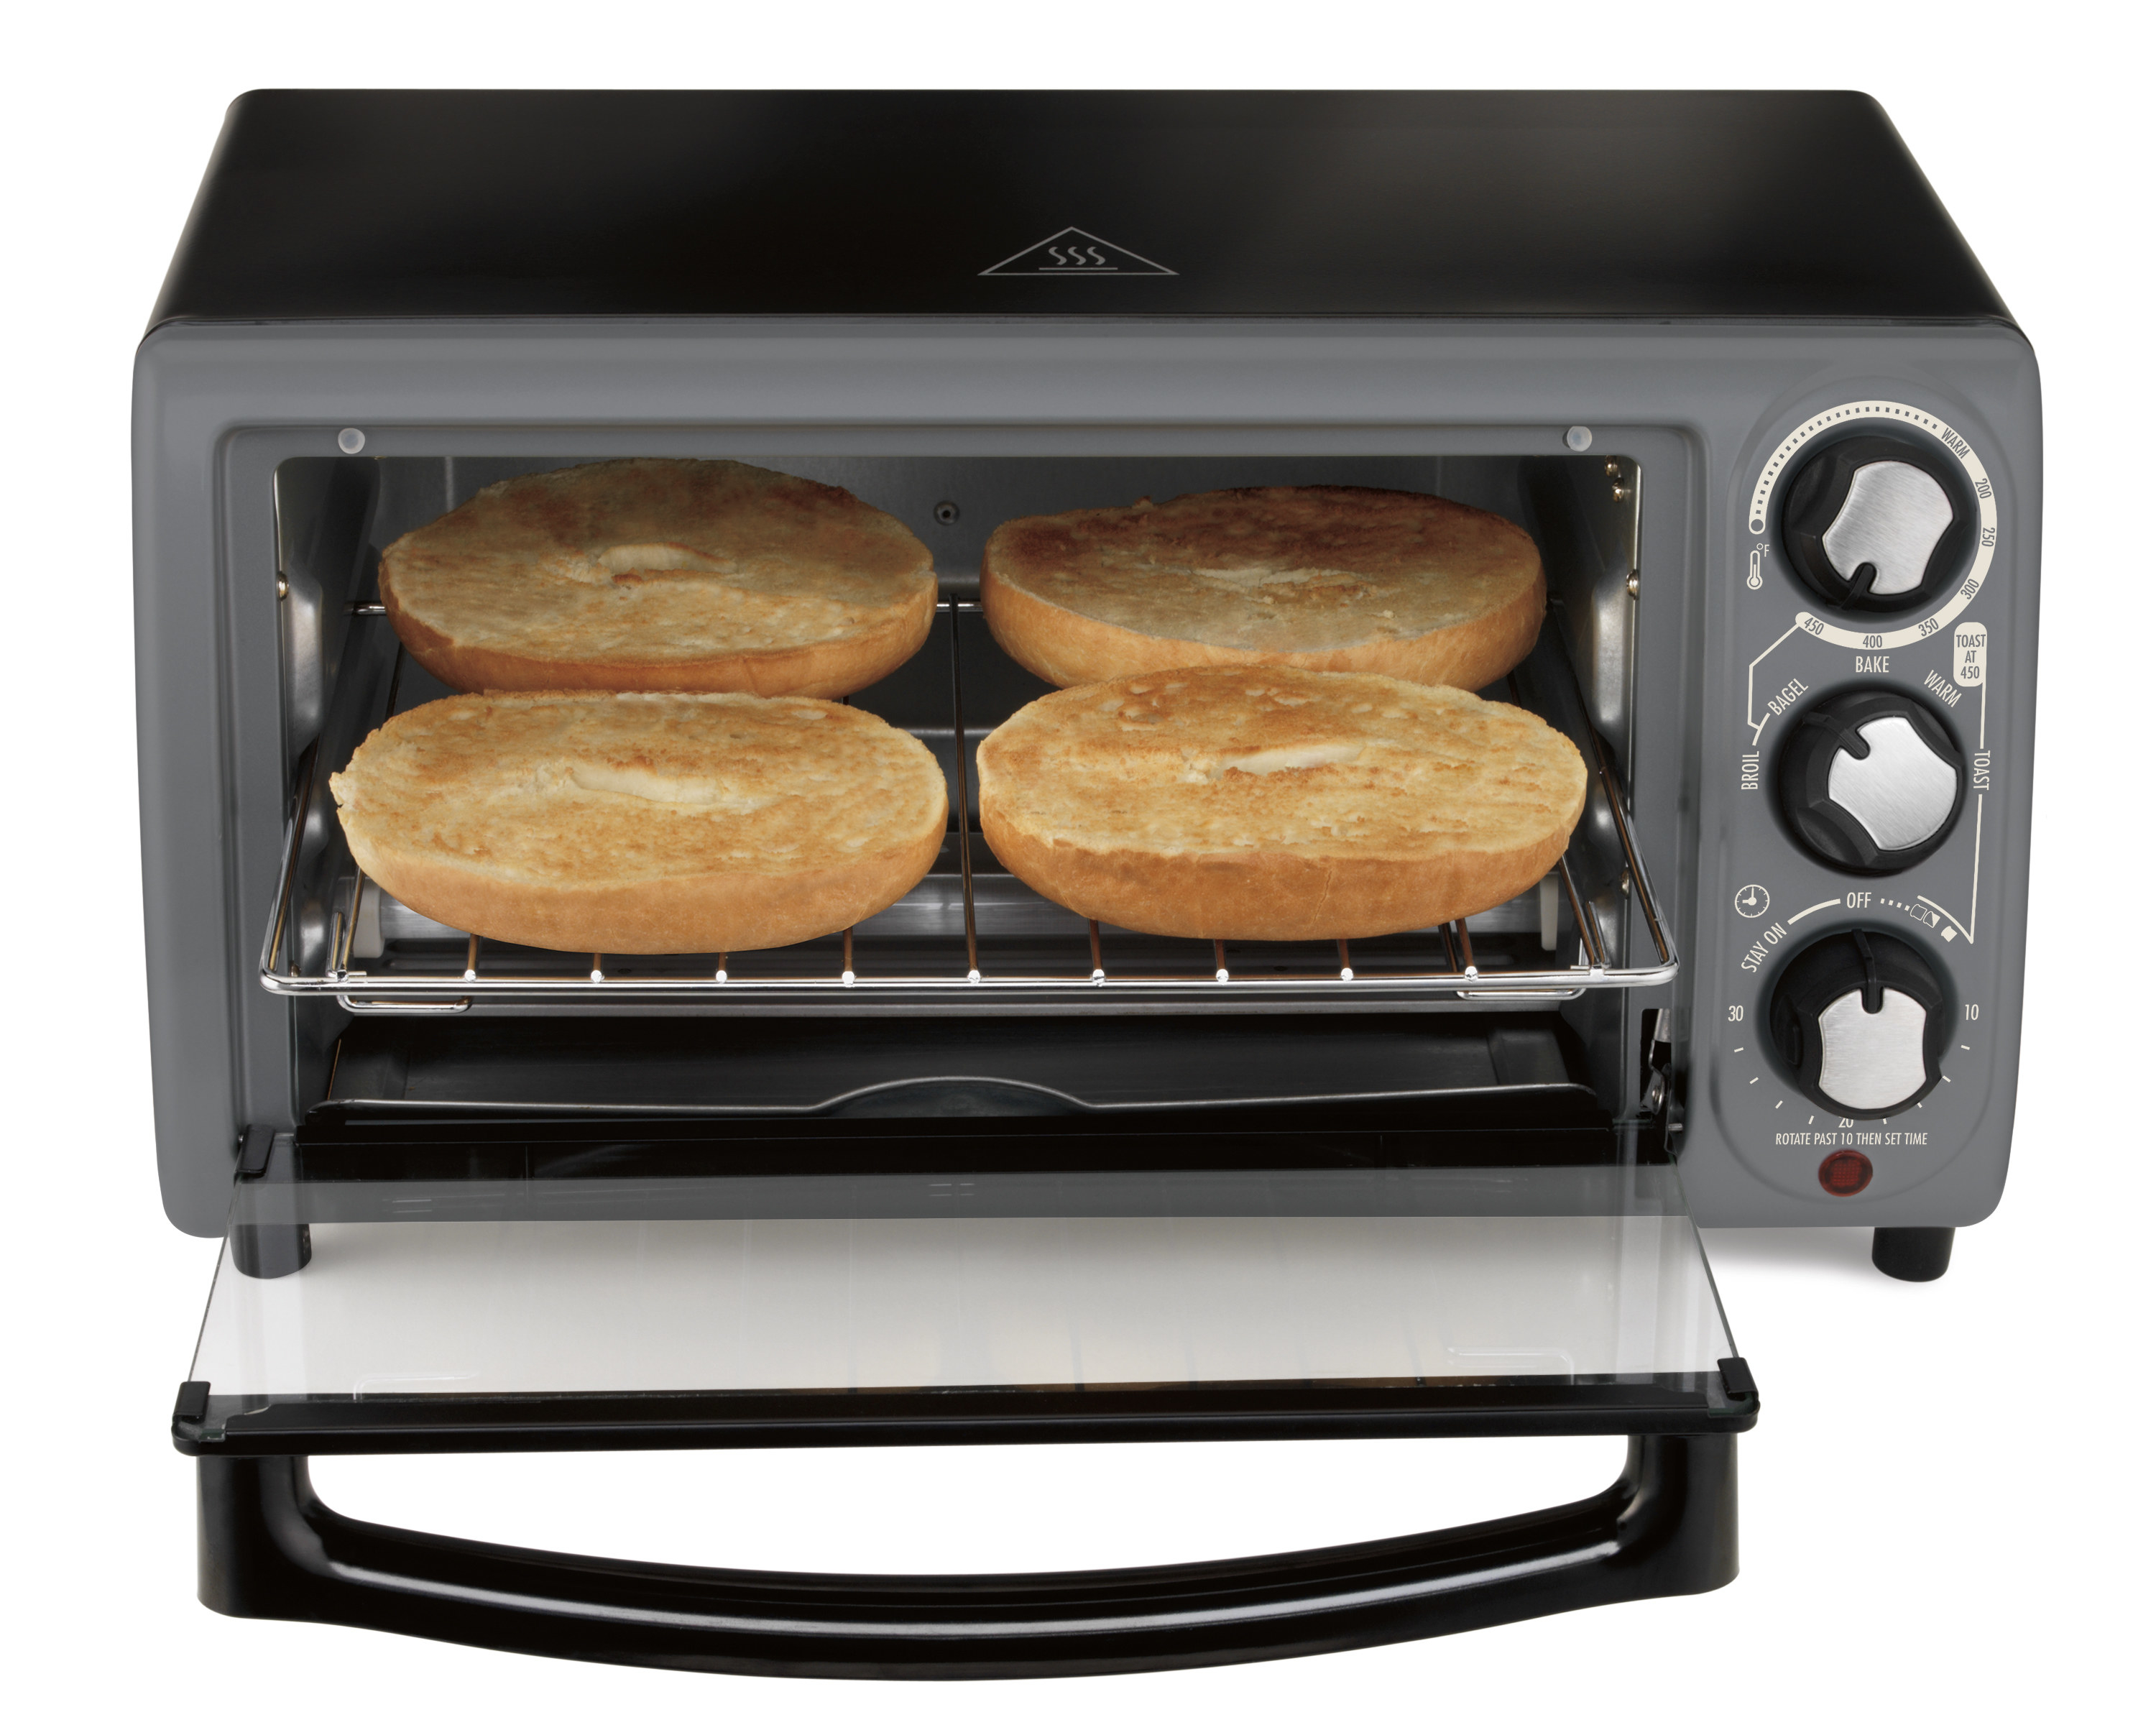 the toaster oven with bagels toasting inside